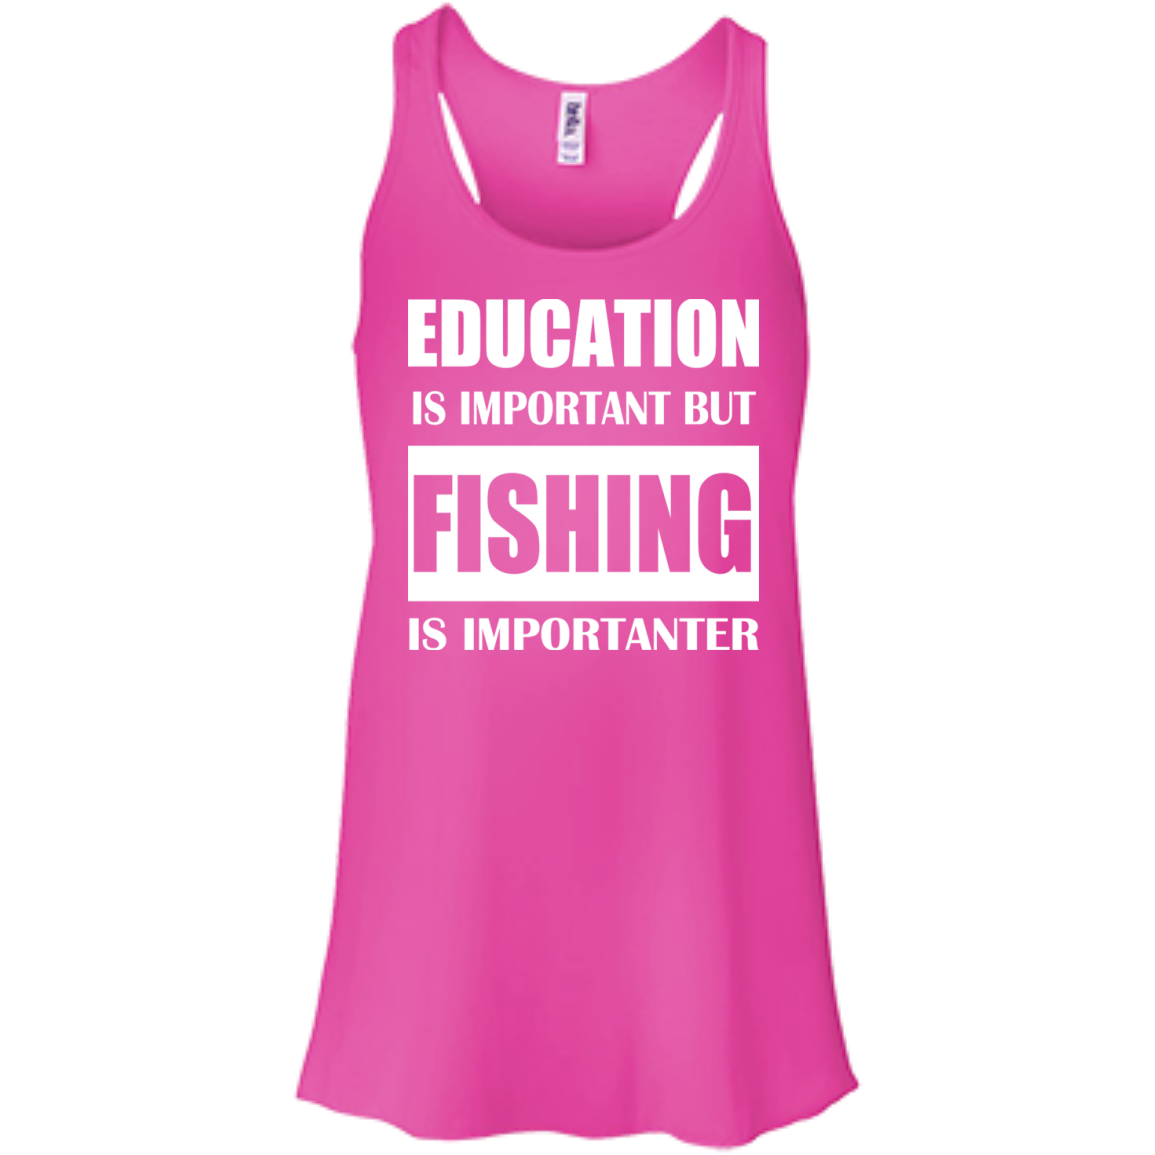 Education Is Important But Fishing Is Importanter Flowy Racerback Tanks